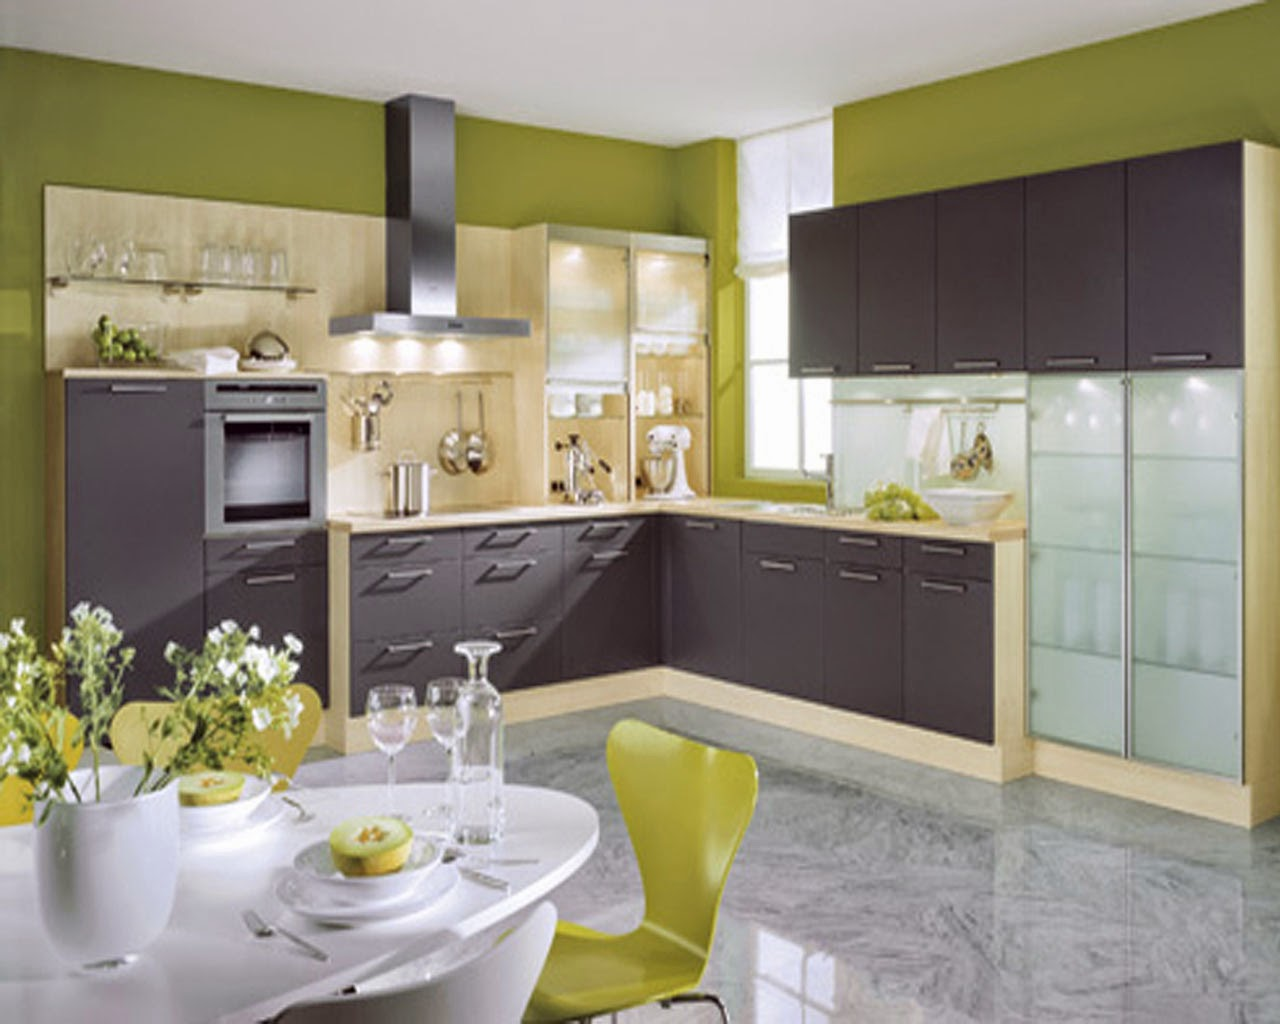 Kitchen designing ideas 2014 freshnist design for Kichan dizain